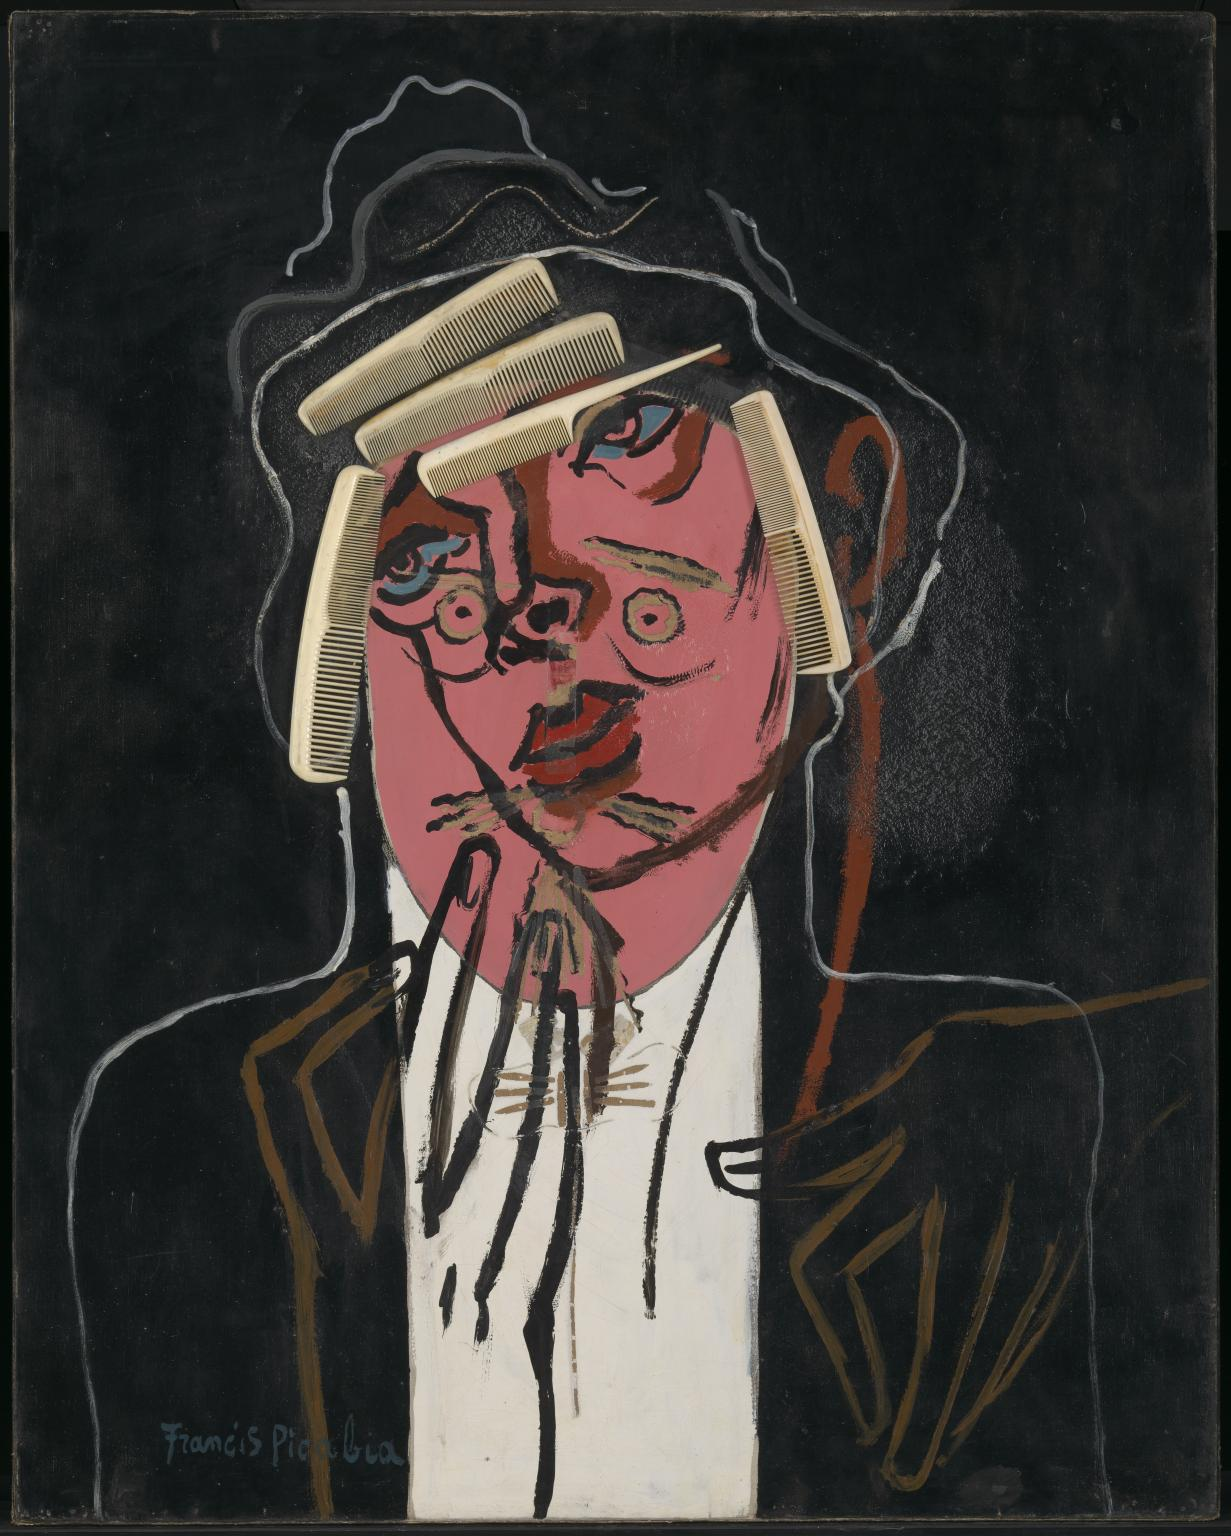 Francis picabia  the handsome pork butcher  1924 26